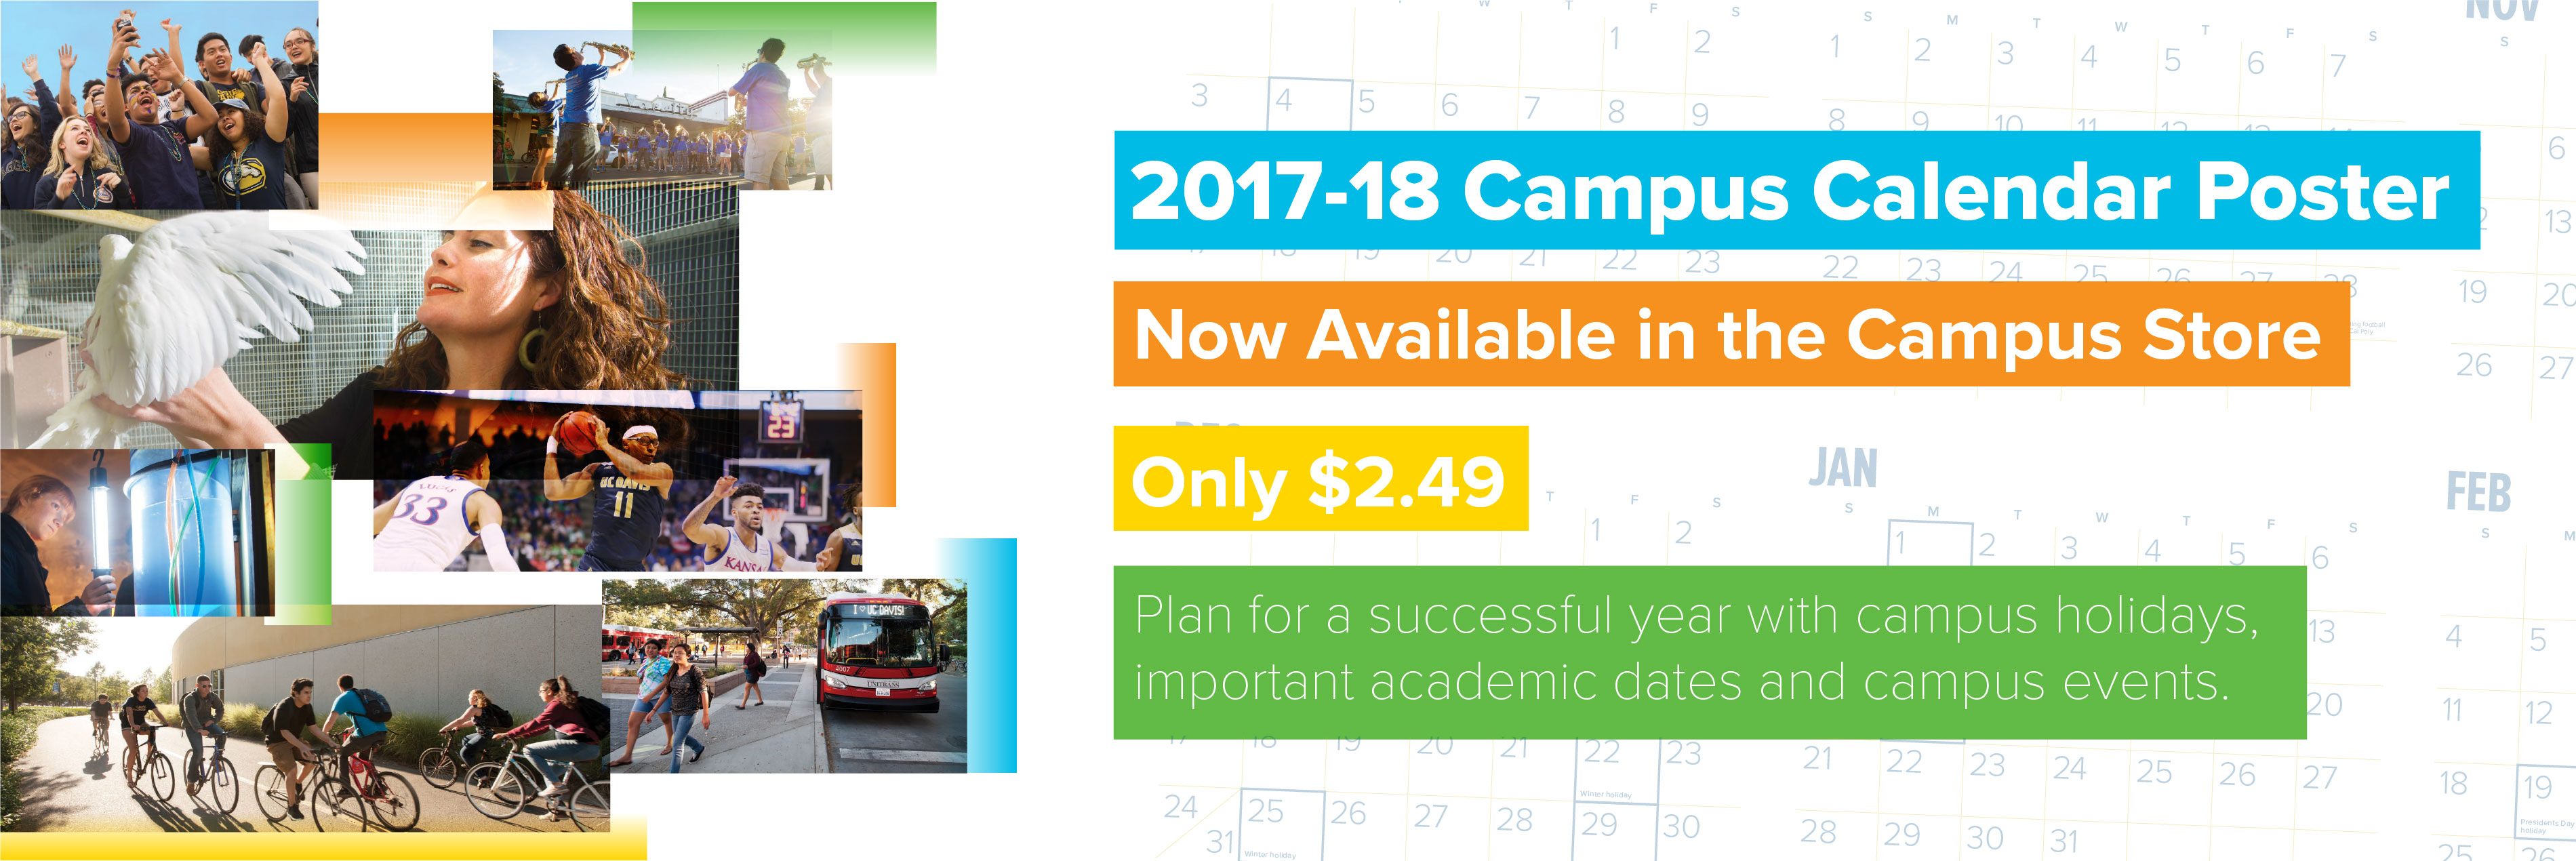 Campus Calendar is now available from the Stores